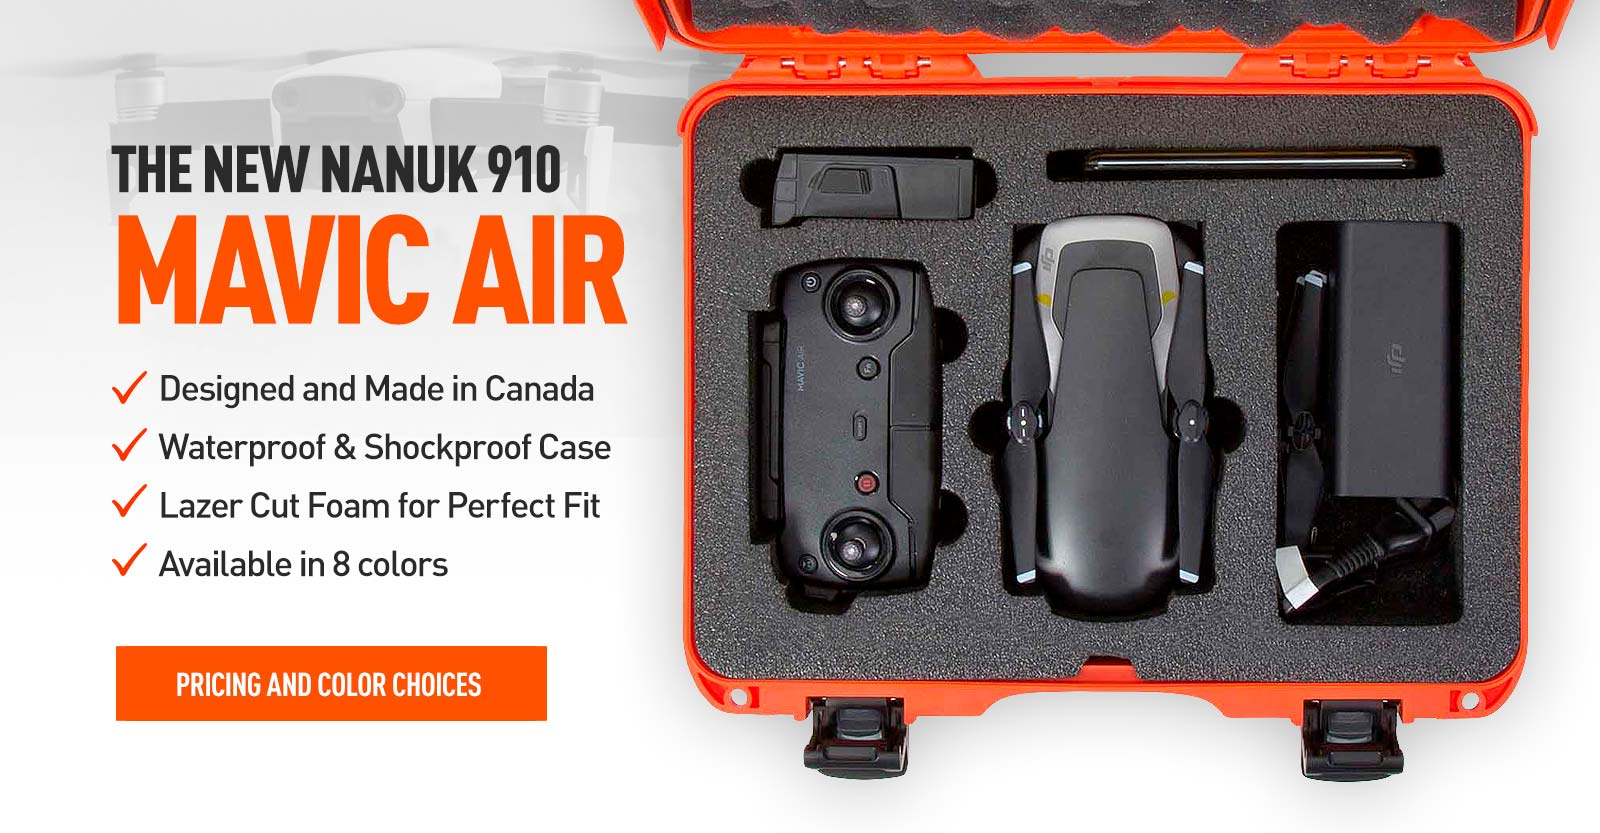 Nanuk 910 for the Maiv Air in Orange